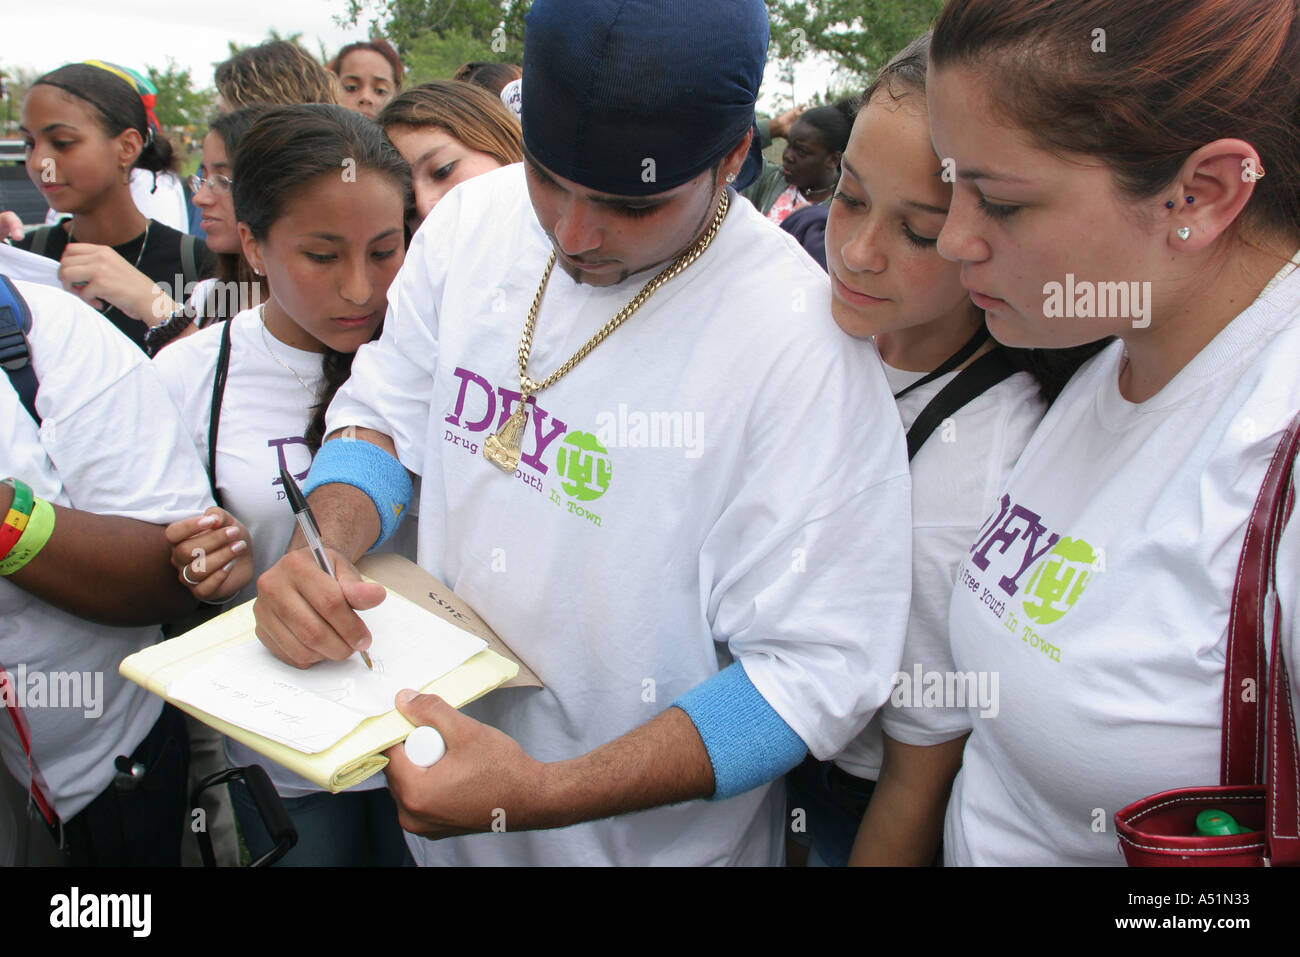 Miami Florida MetroZoo DFYIT Drug Free Fest students D County rap performer signs autograph - Stock Image